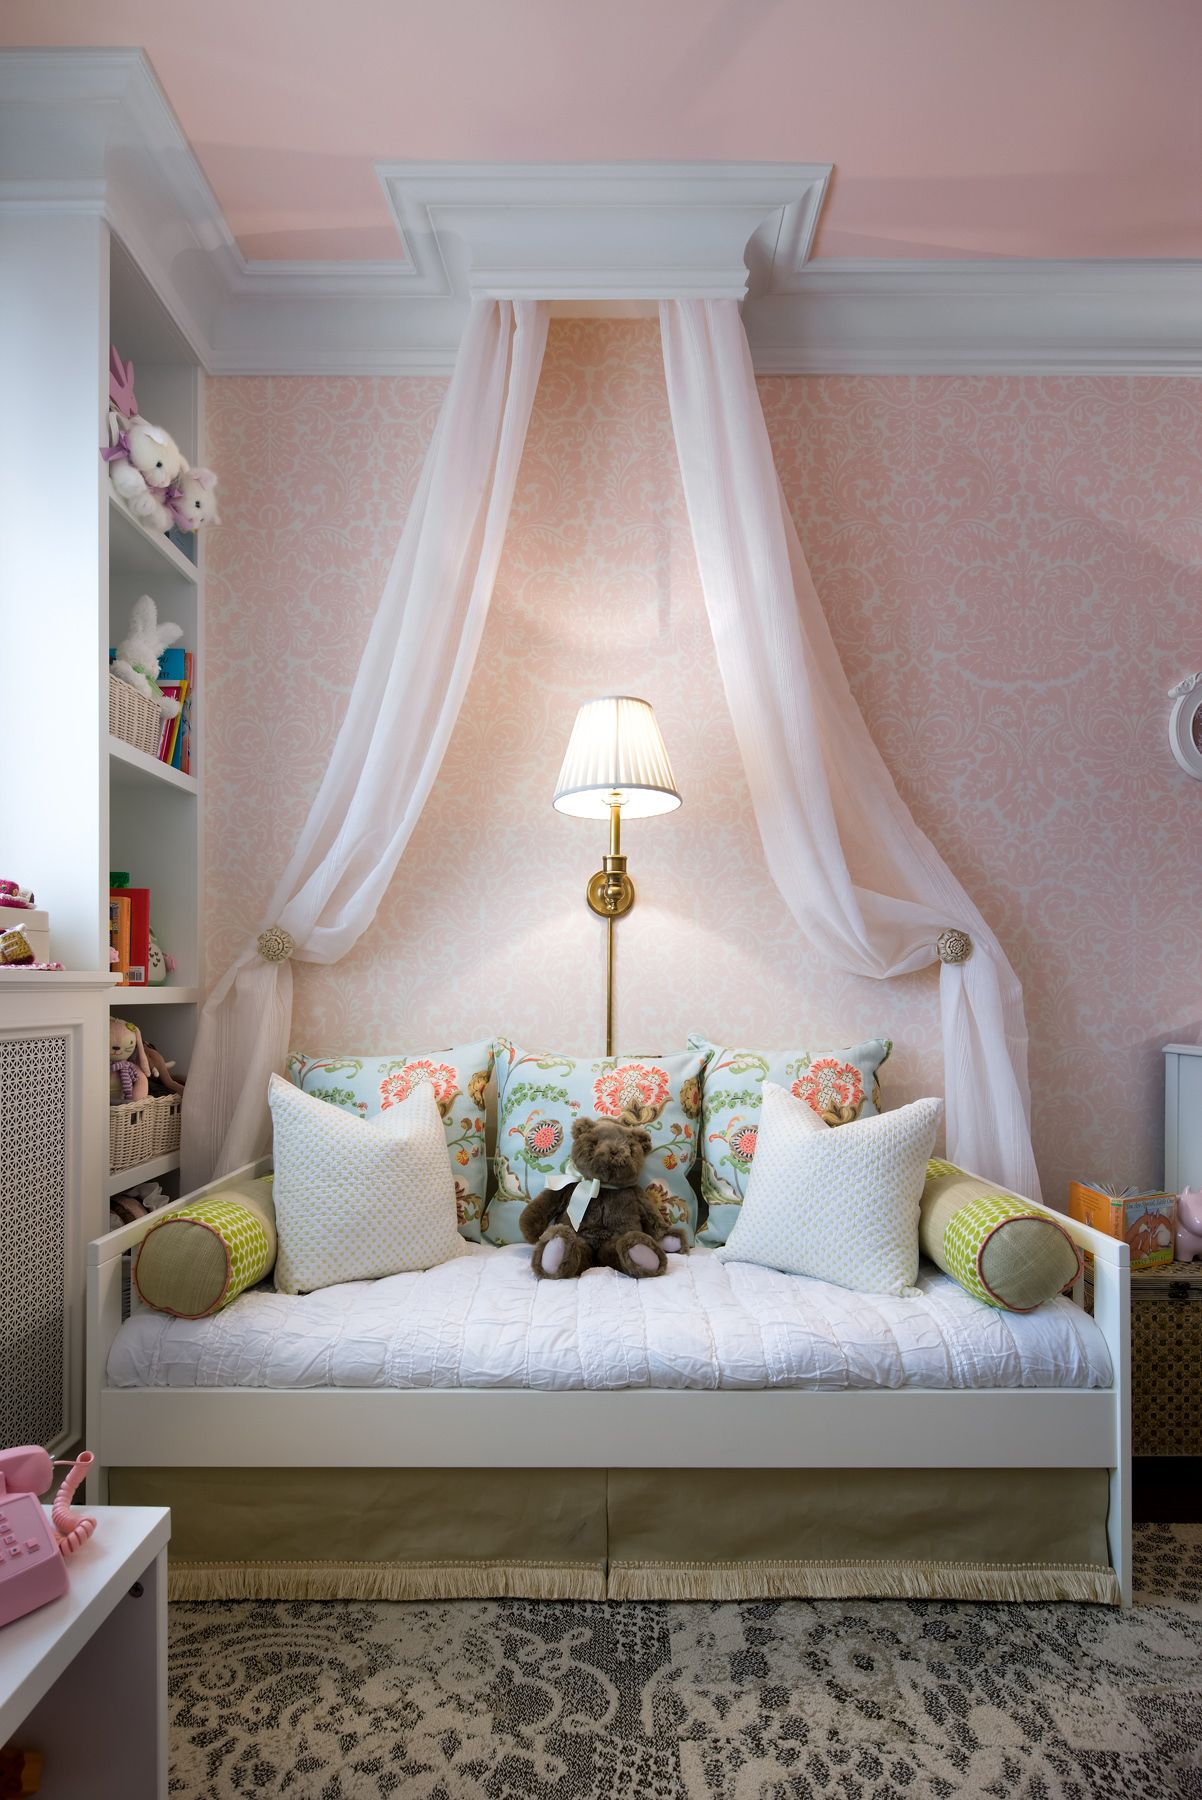 Daybed canopy ideas -  Candicetellsall Watchandpin This Charming Daybed Is The Perfect Addition To A Once Cluttered Little